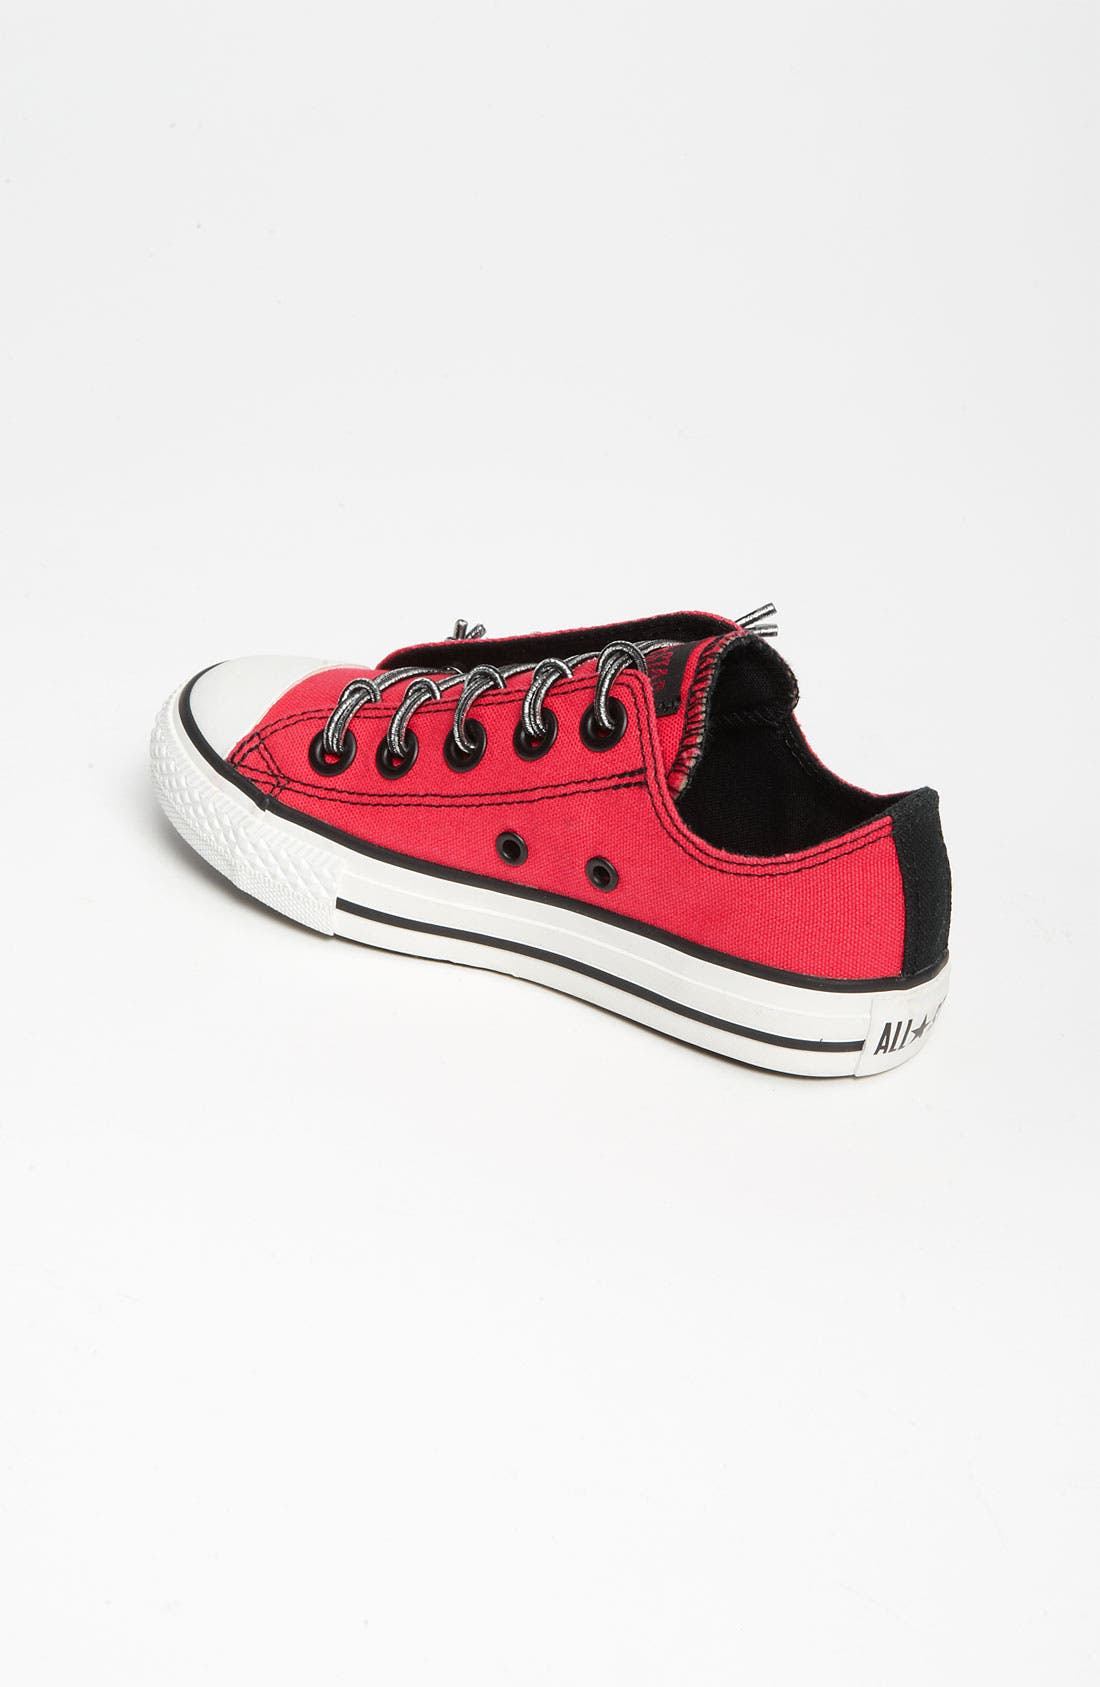 Alternate Image 2  - Converse 'Loop 2 Knot' Sneaker (Toddler, Little Kid & Big Kid)